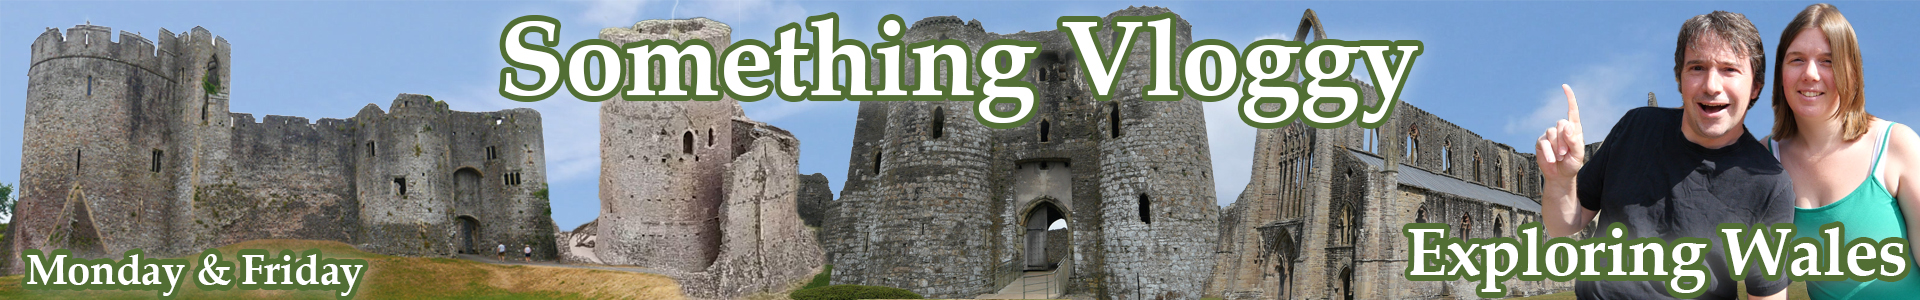 OGMORE CASTLE: How much Og Does a Castle Need?